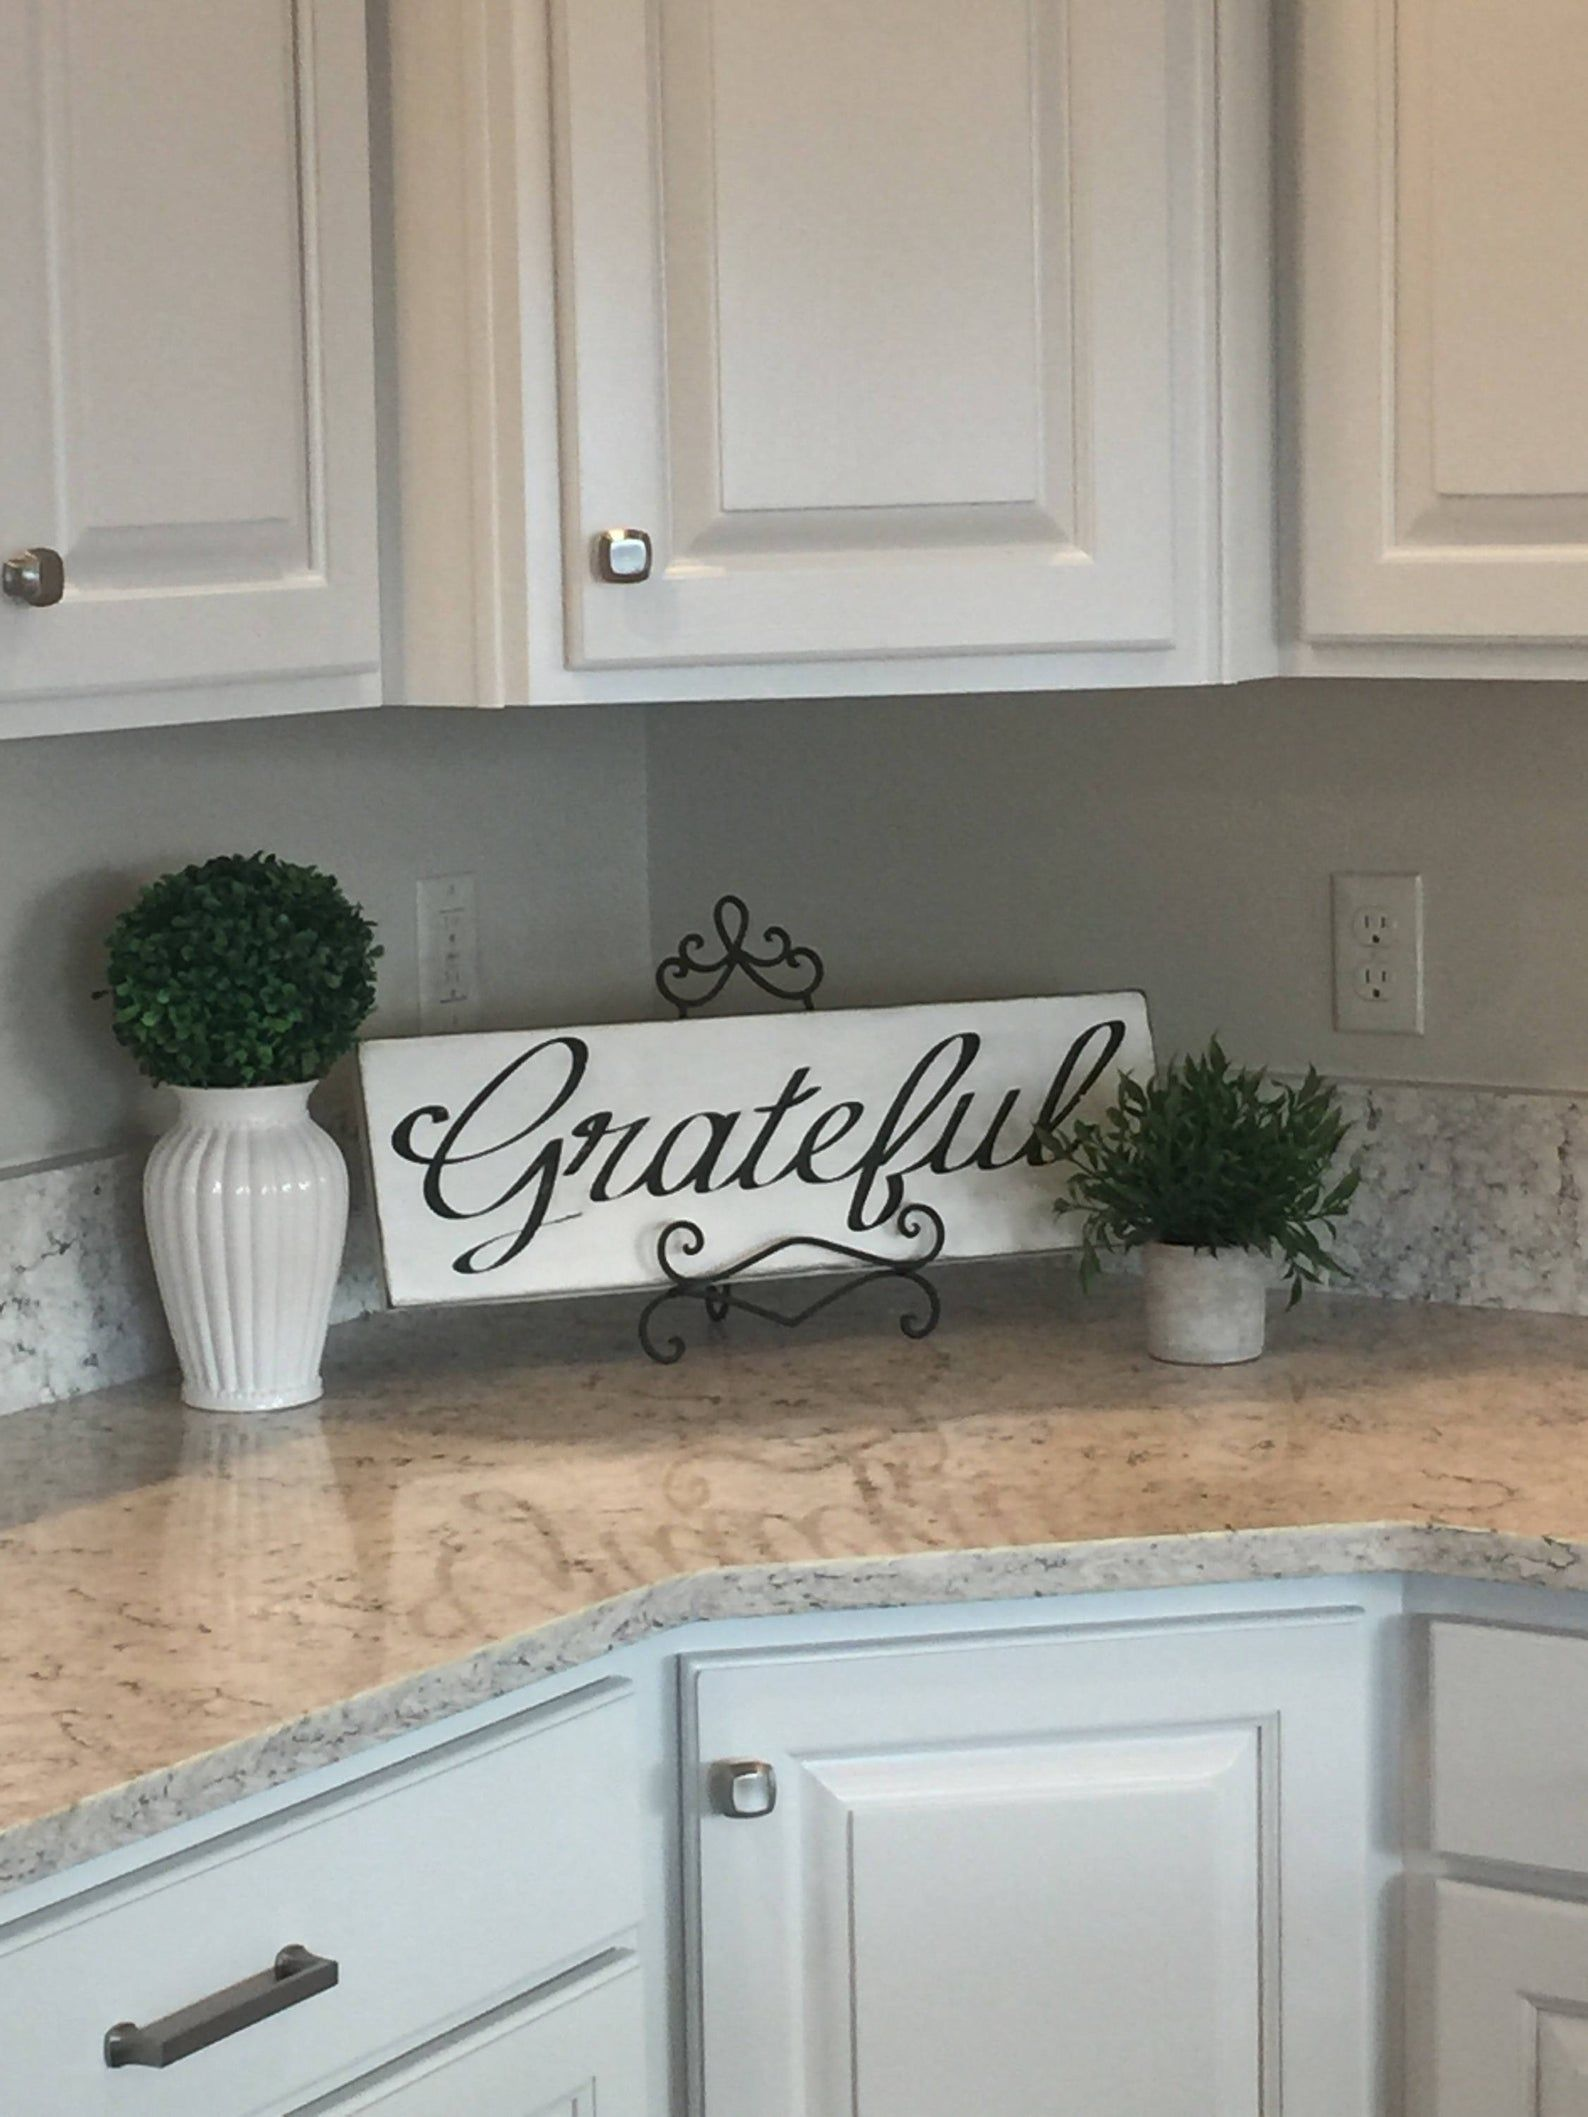 Greatful Sign Hand Painted Sign Wood Sign Farmhouse Decor Etsy Farmhouse Kitchen Decor Home Decor Kitchen Kitchen Counter Decor